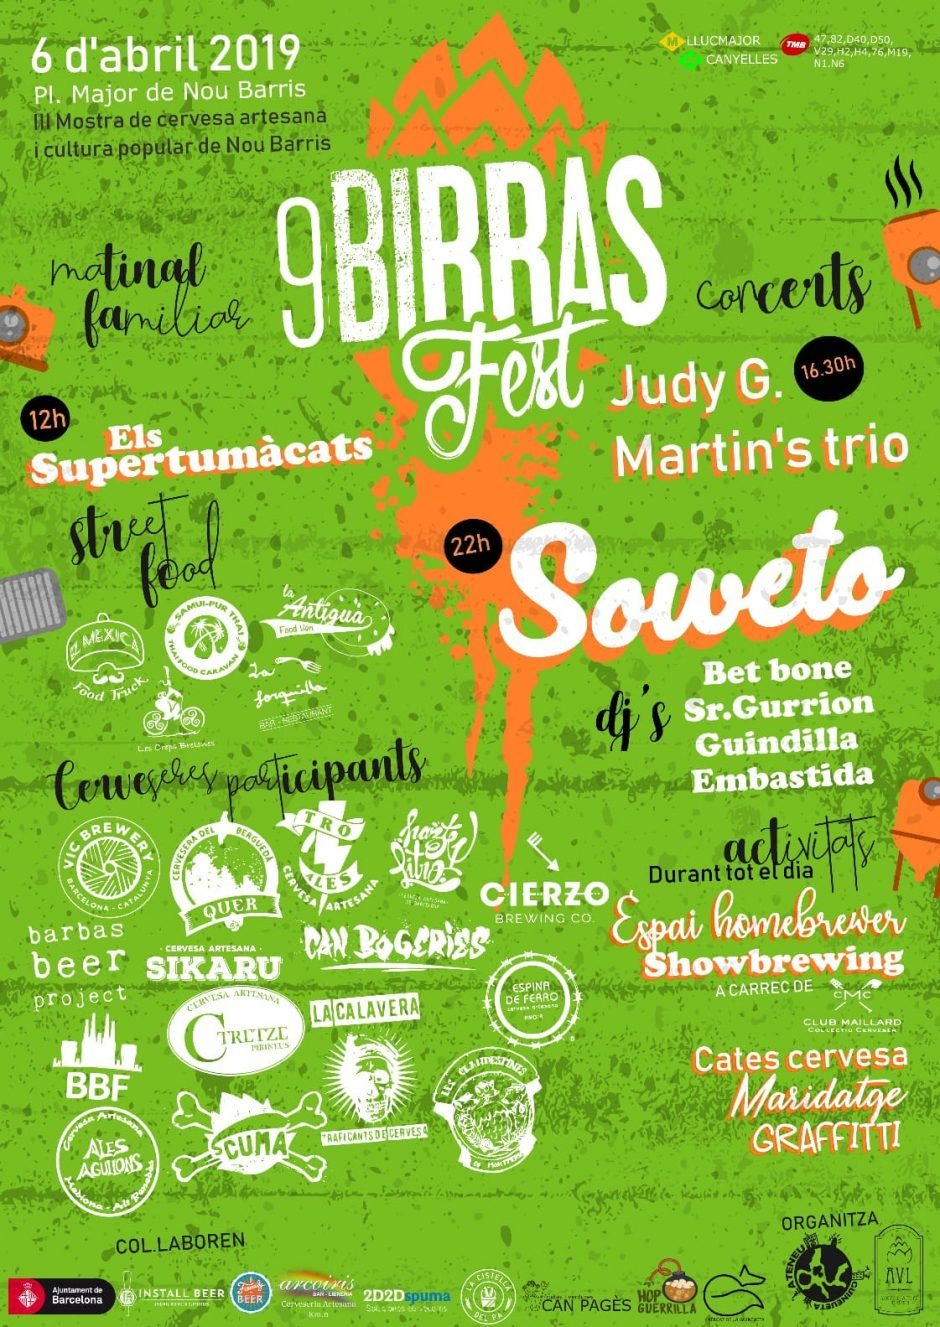 9 birras fest craft beer